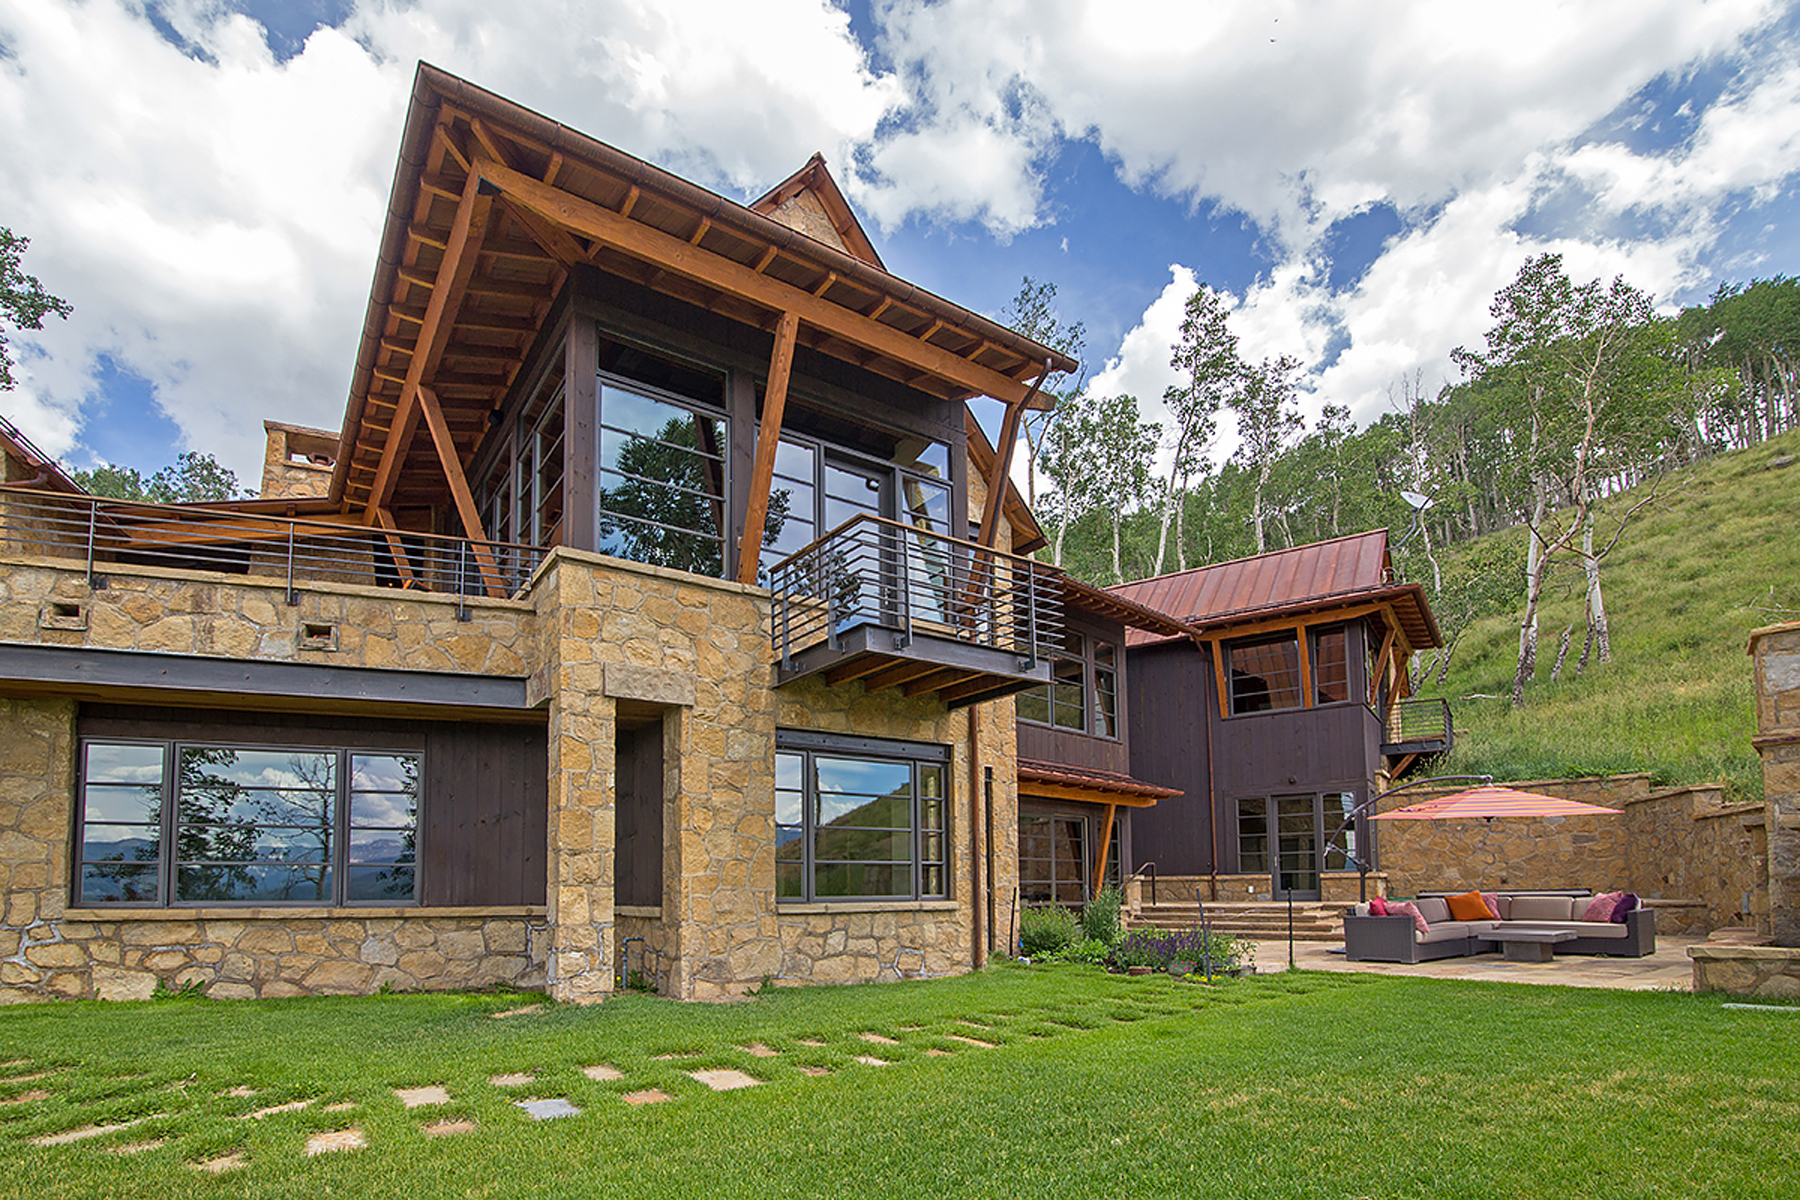 Additional photo for property listing at 229 E. Serapio Drive 229 E. Serapio Drive Telluride, Colorado 81435 United States